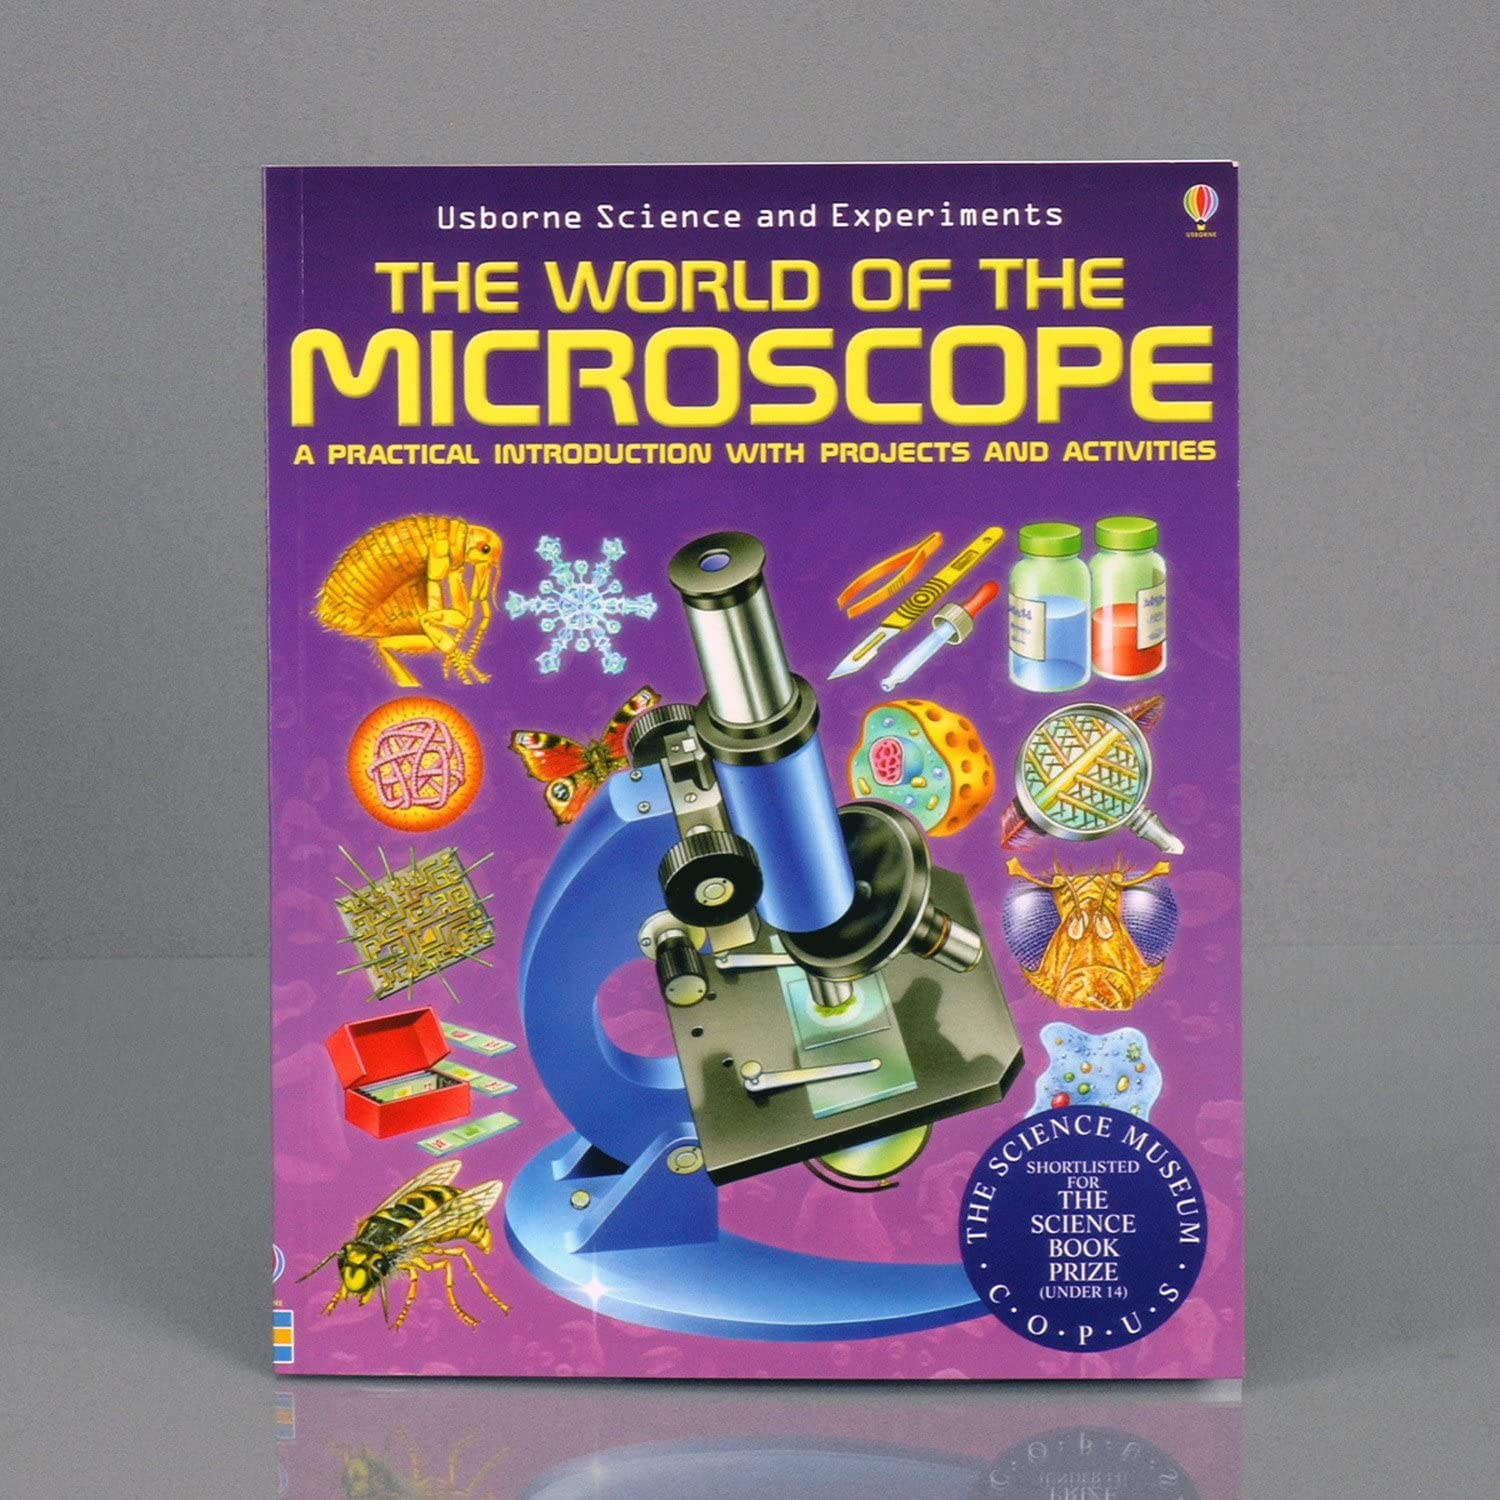 AmScope M60C-ABS-PS25-WM Beginner Microscope Kit Includes Case Mirror Illumination Set of 25 Prepared Slides WF10x and WF20x Eyepieces 40x-1000x Magnification and Book